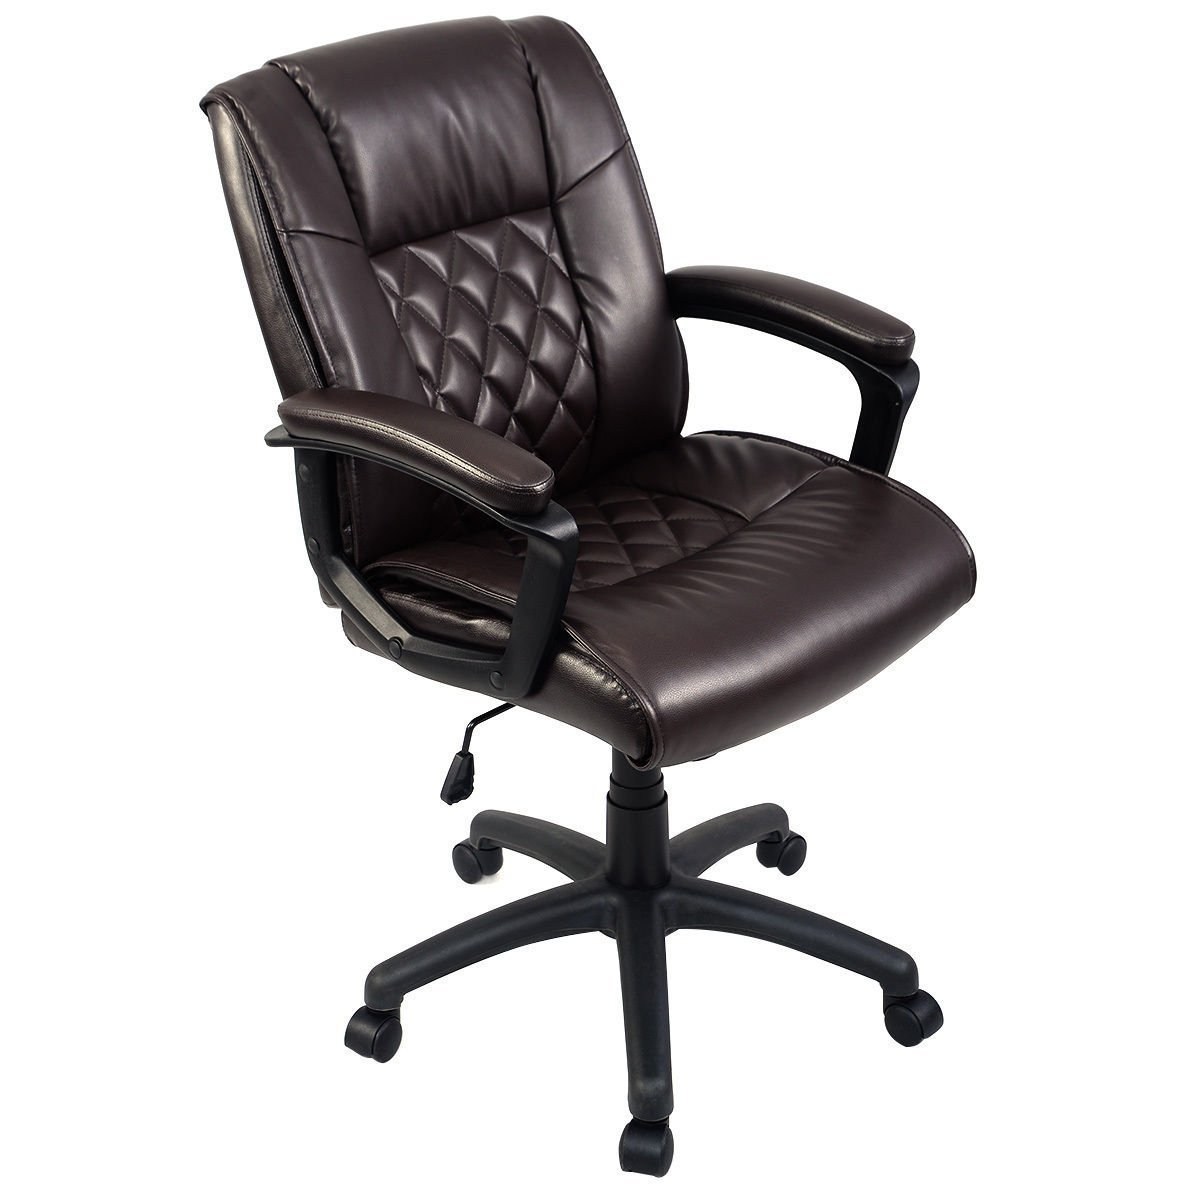 Giantex Ergonomic Pu Leather Mid Back Executive Computer